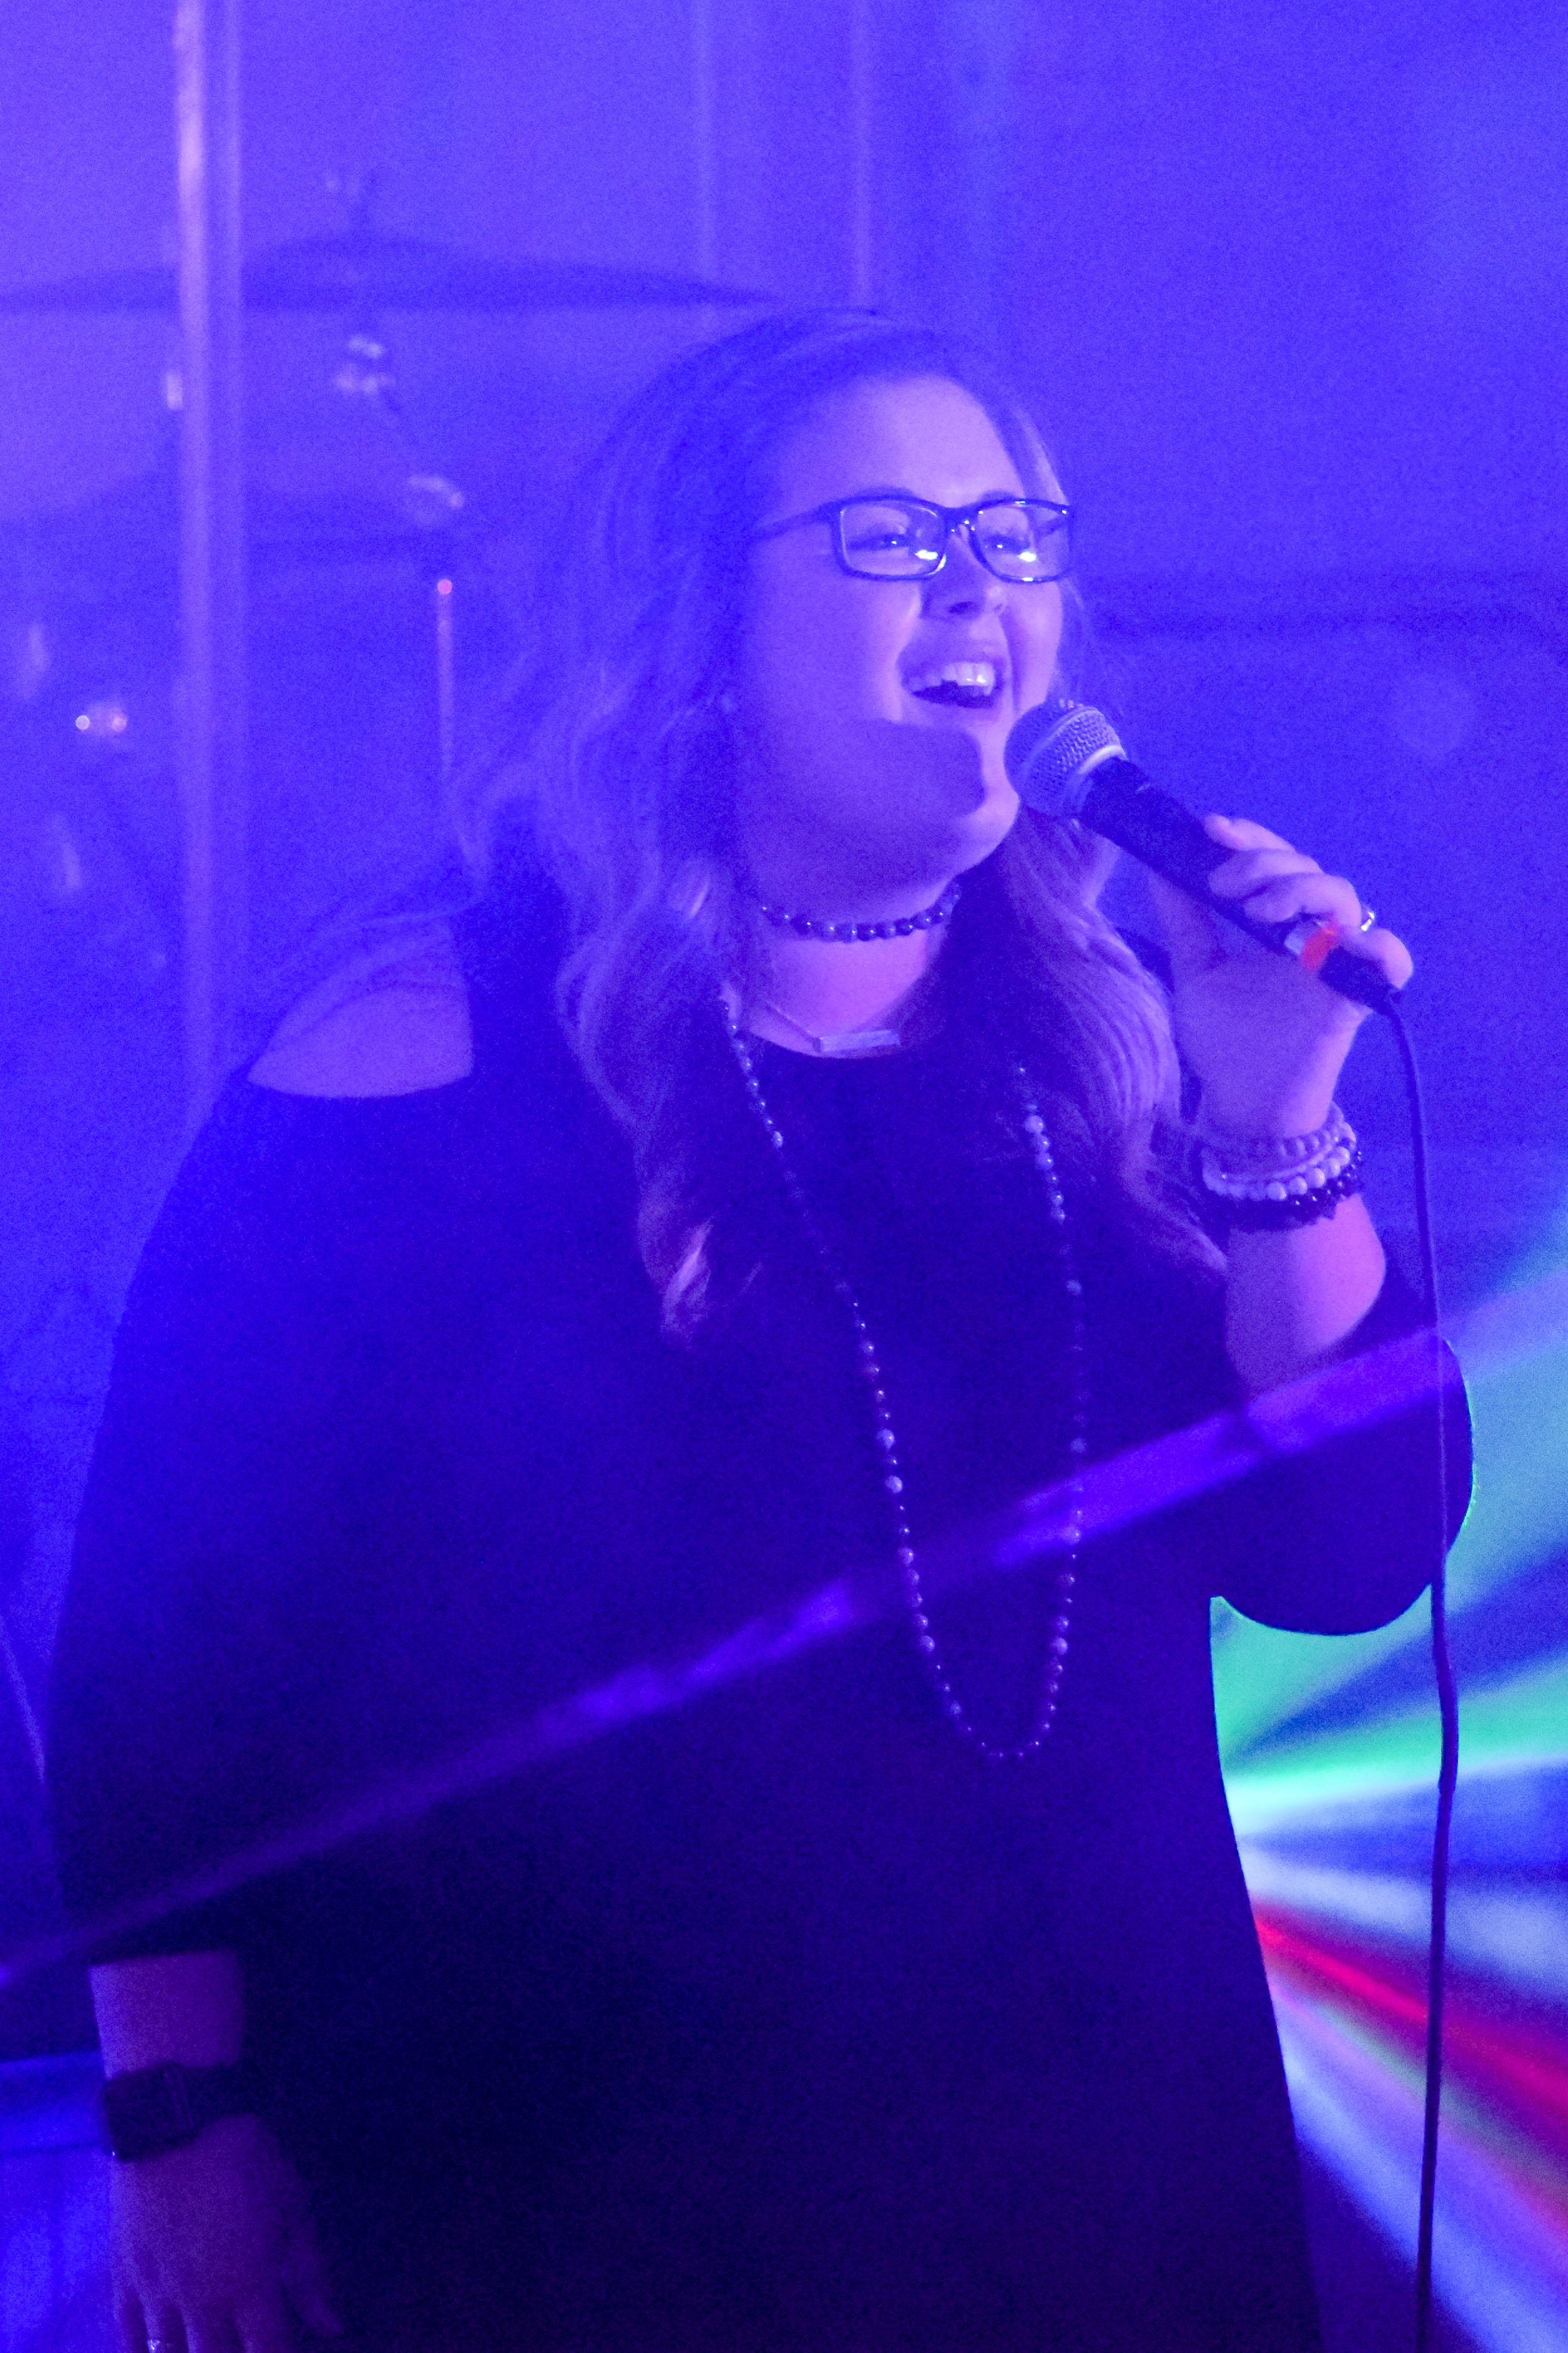 Senior, Cameron Burroughs, shows the passion she has for singing about the Lord.